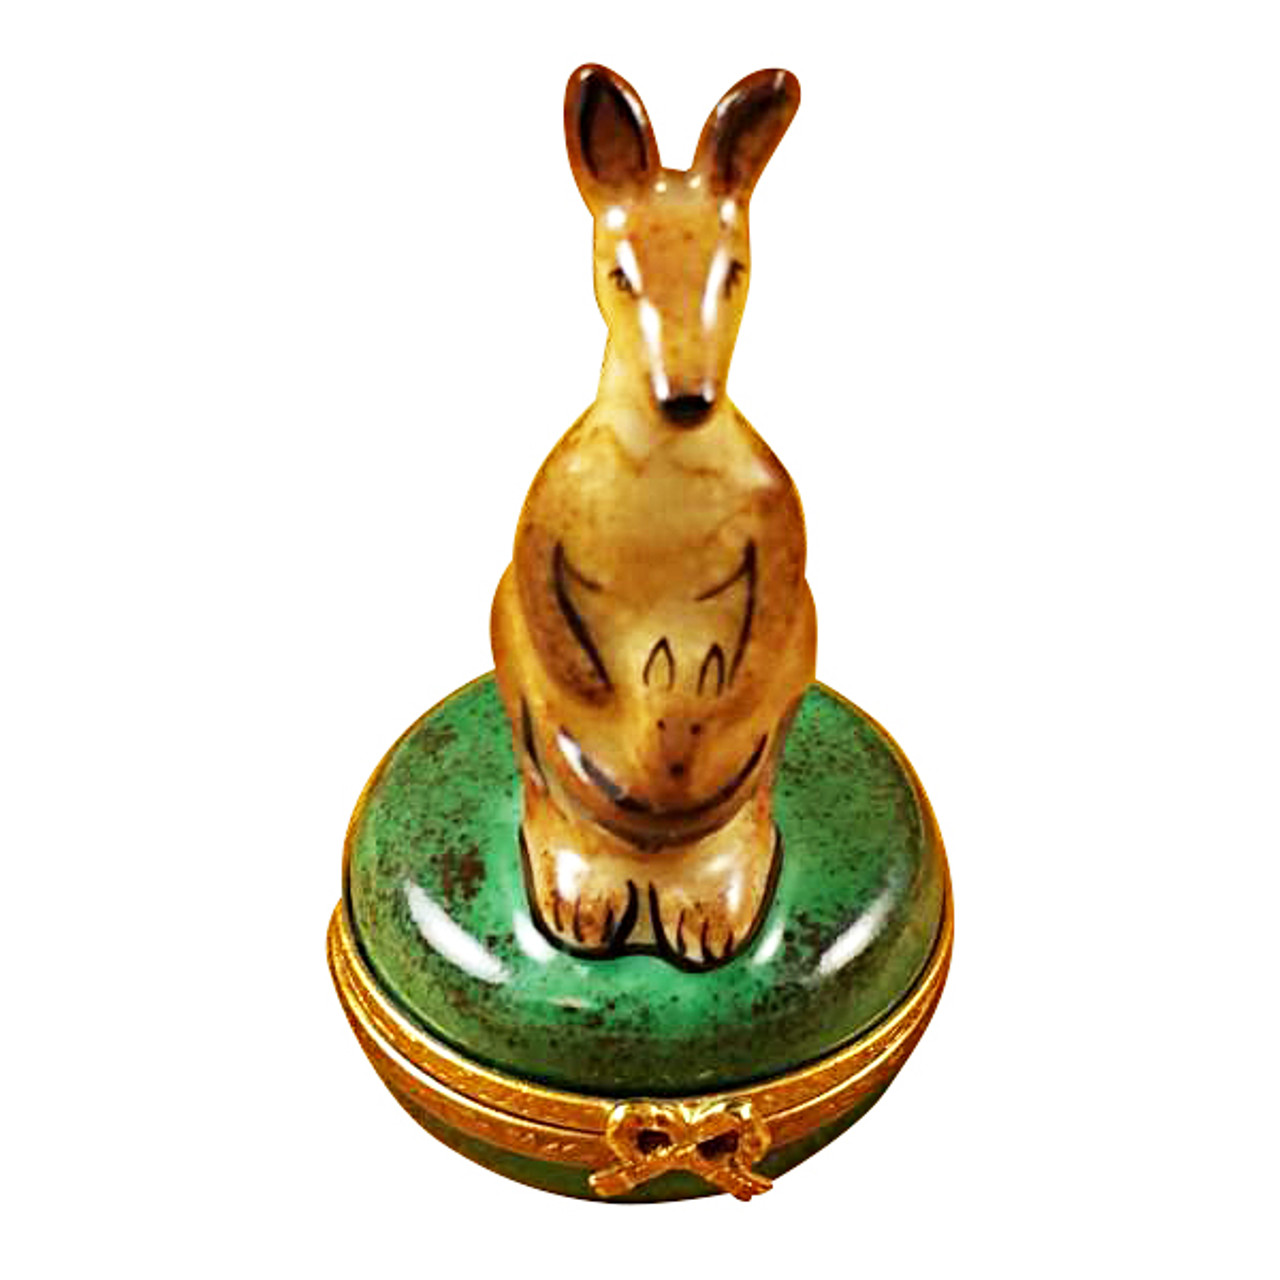 Limoges Imports Kangaroo On Round Box Limoges Box